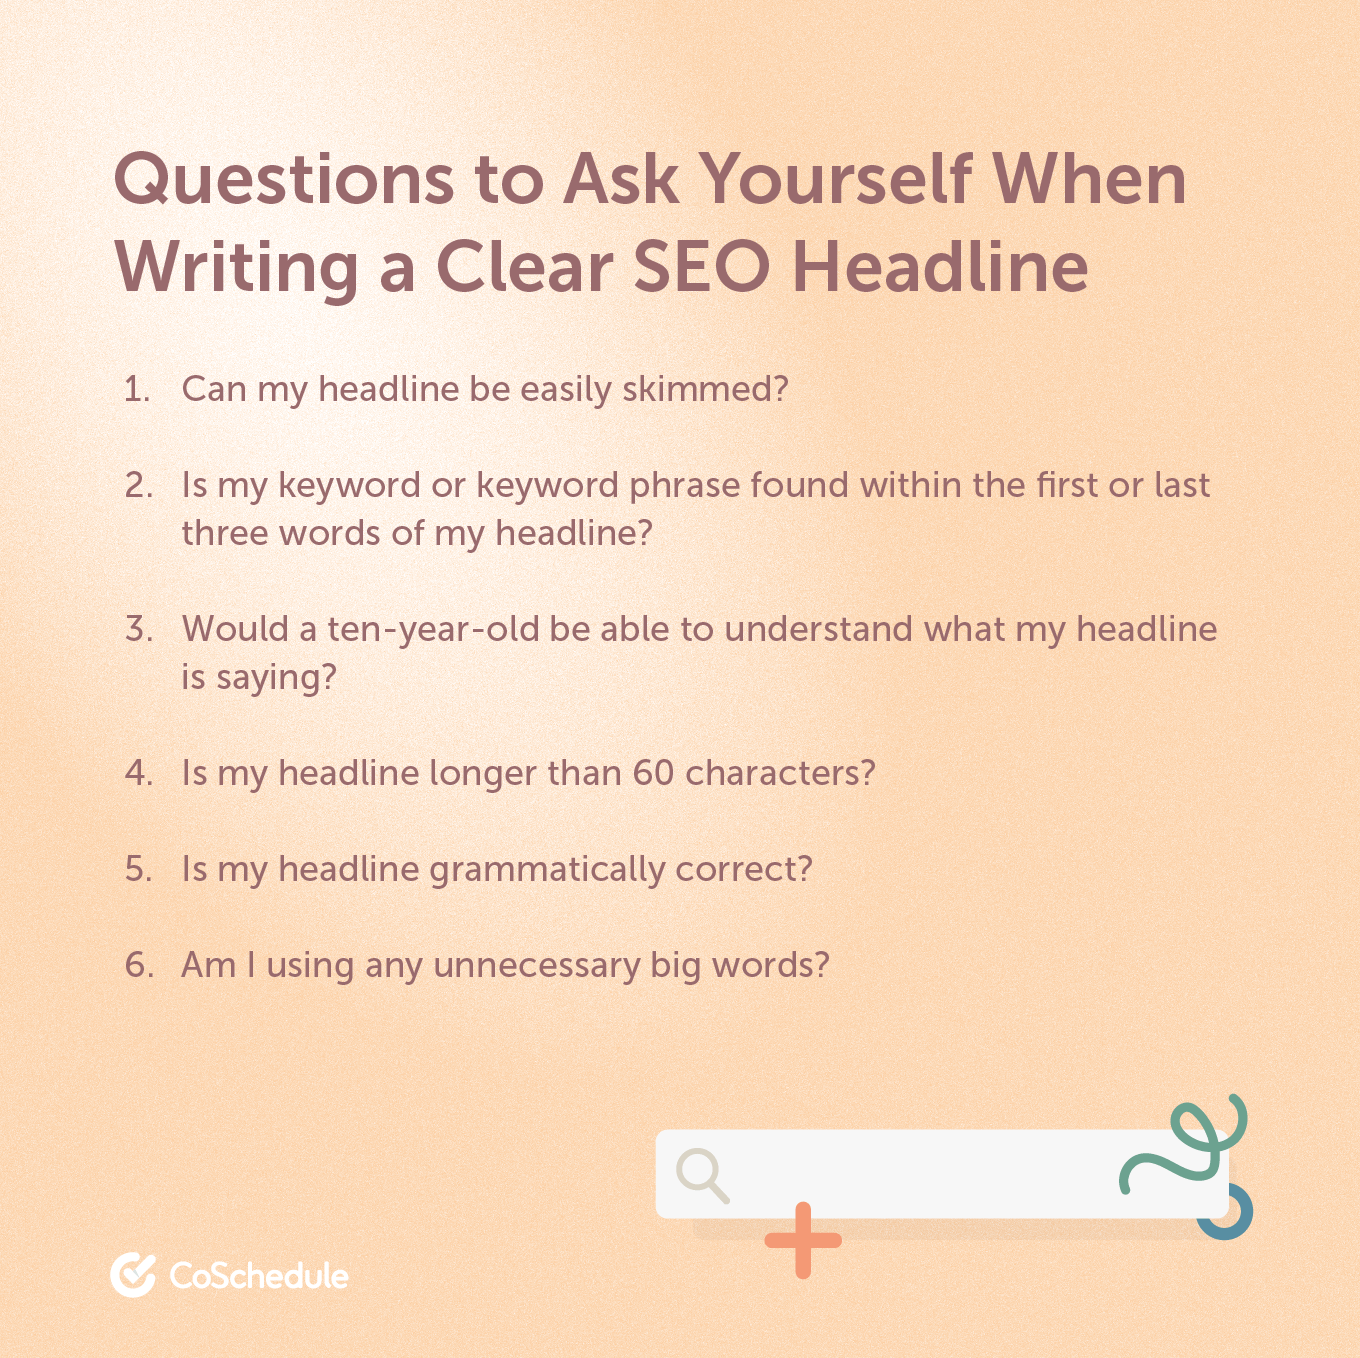 SEO headline questions to ask